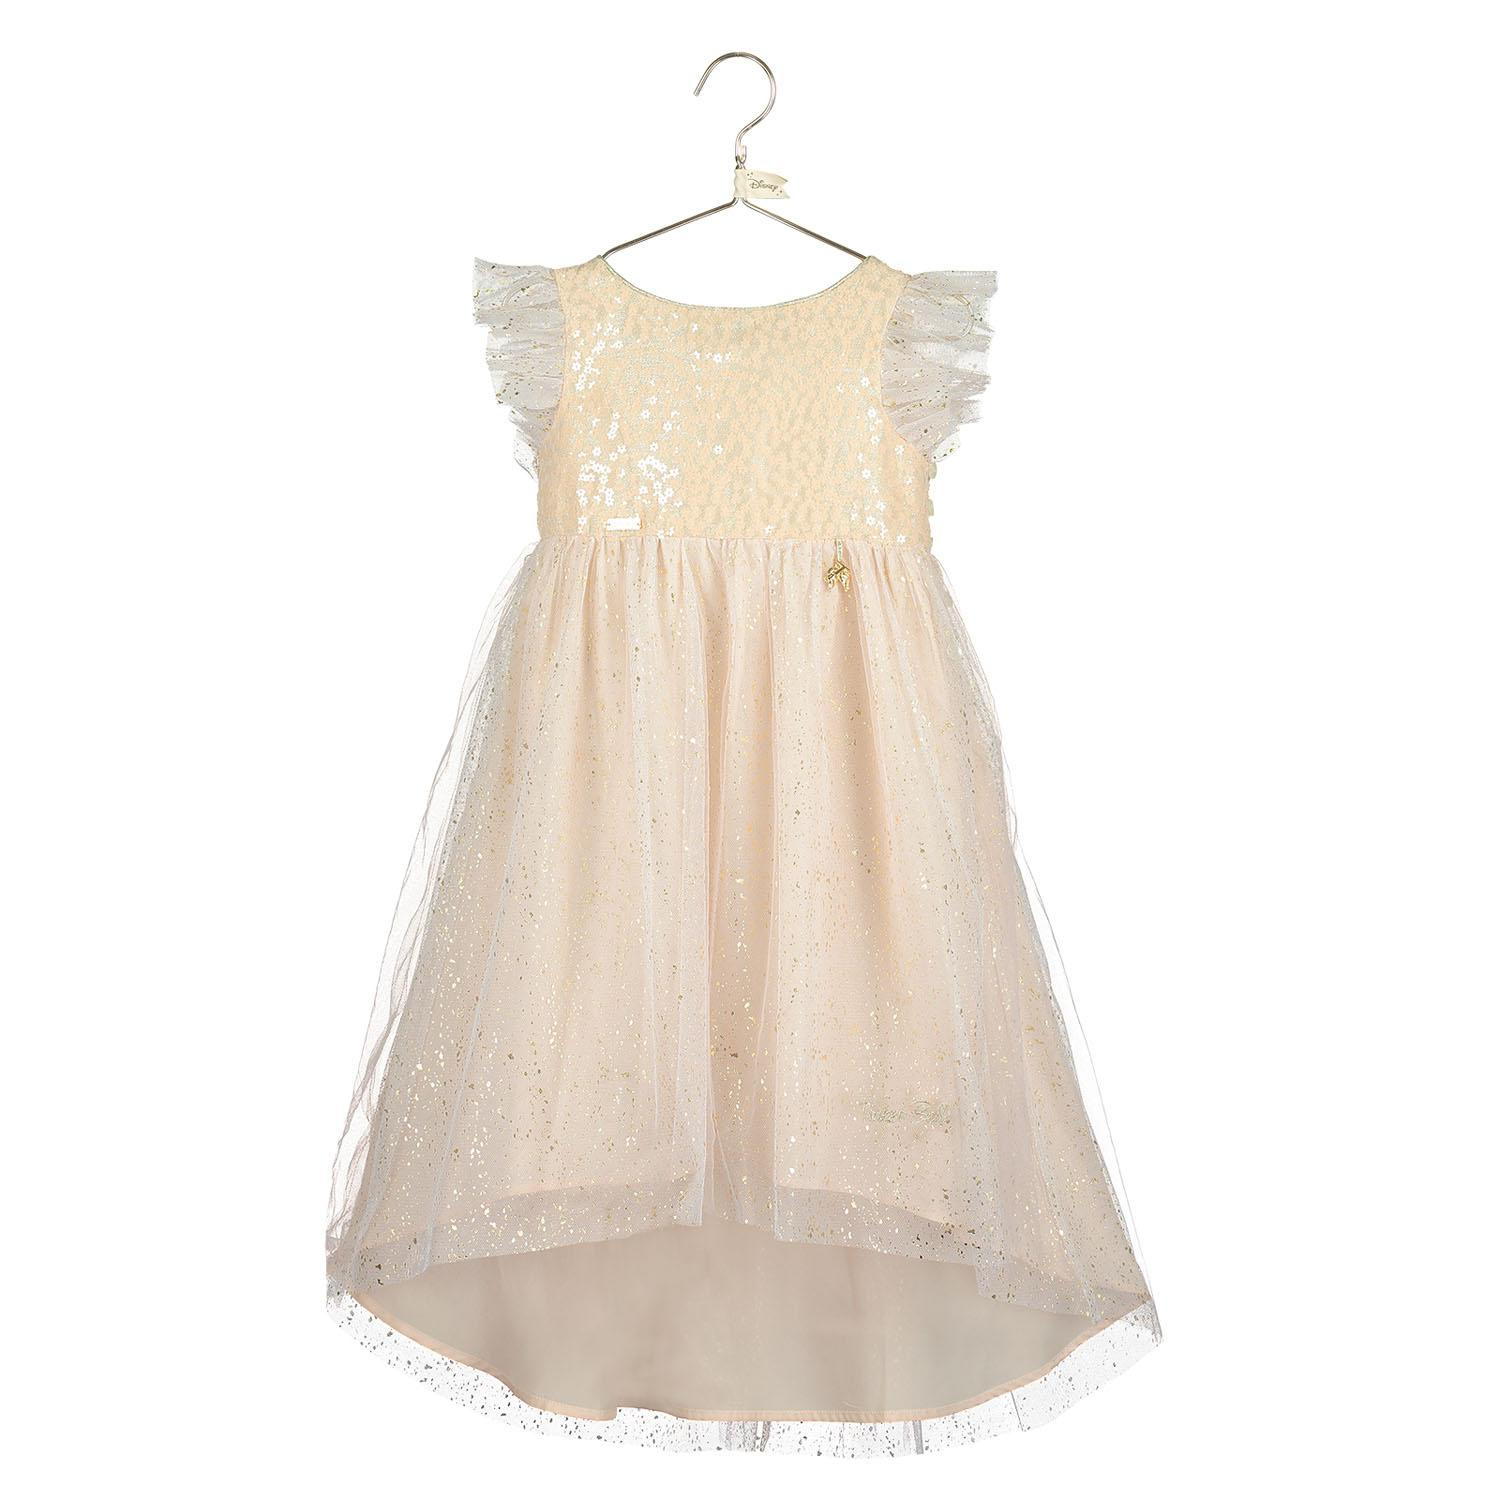 Tinker Bell Sparkle Dress with Drip Hem